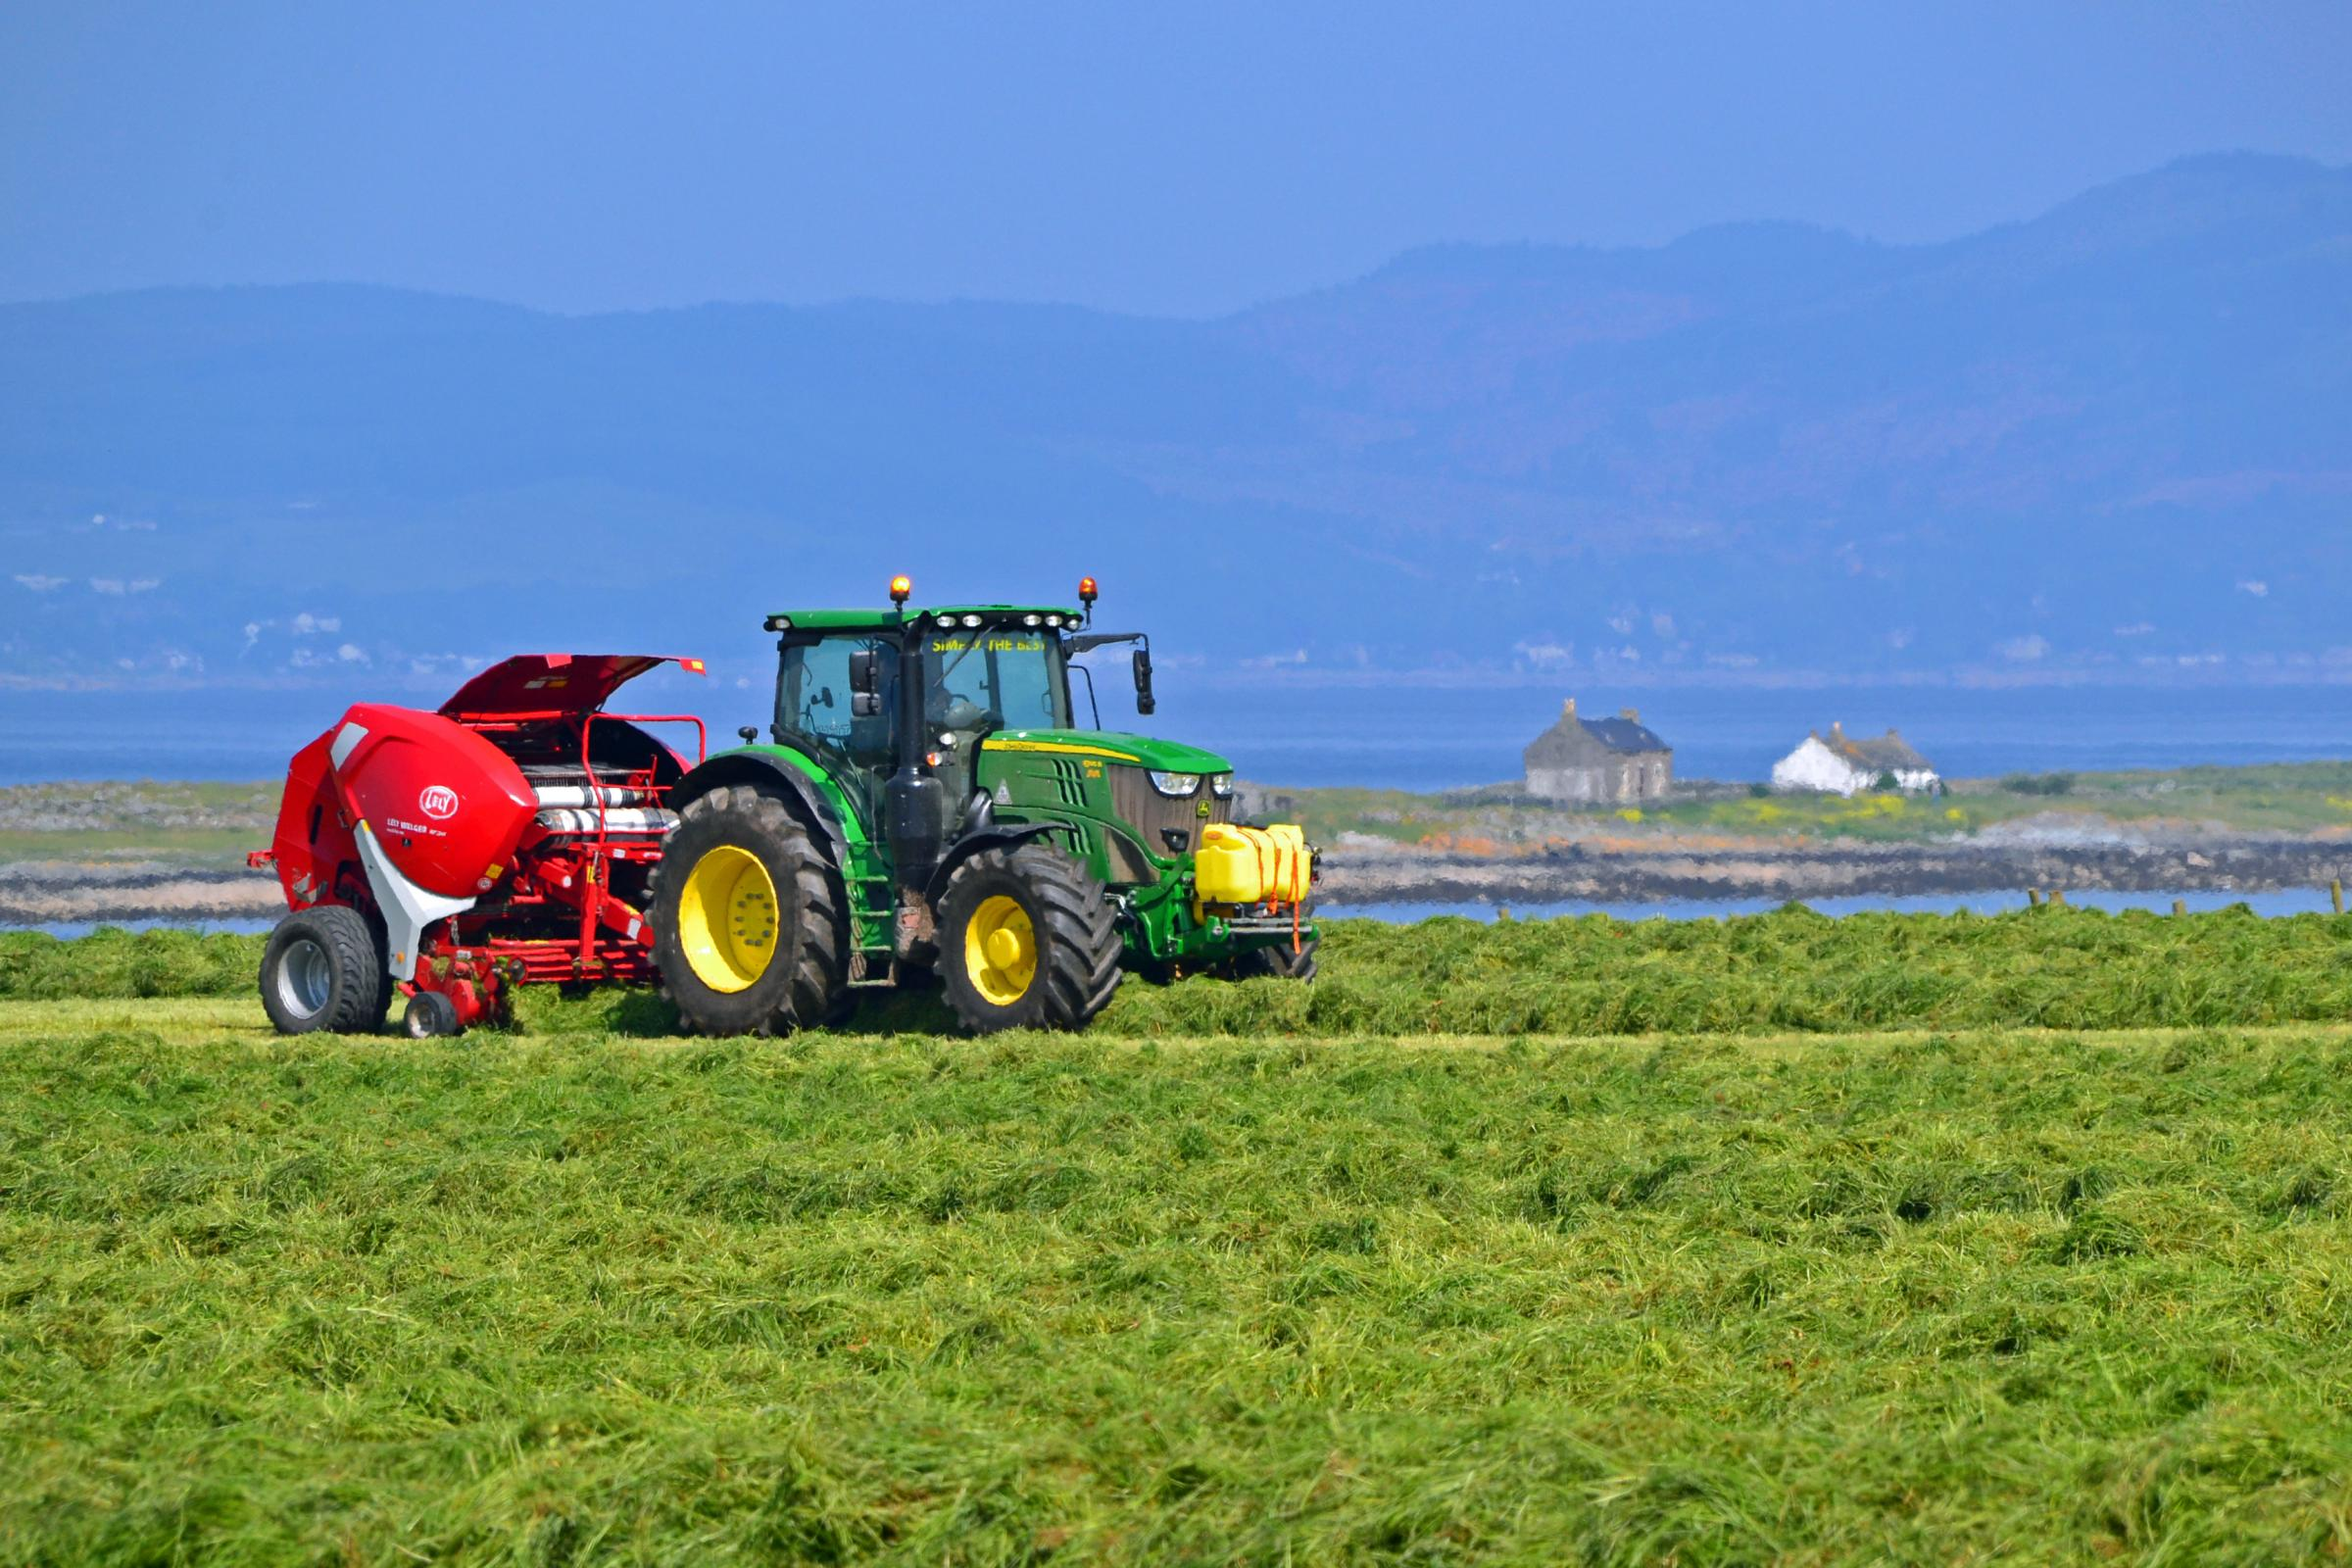 REYNOLDS TEAM baling at Wee Kilmory Farm, Isle of Bute, for Ian Dickson, with St Ninians Bay in the background